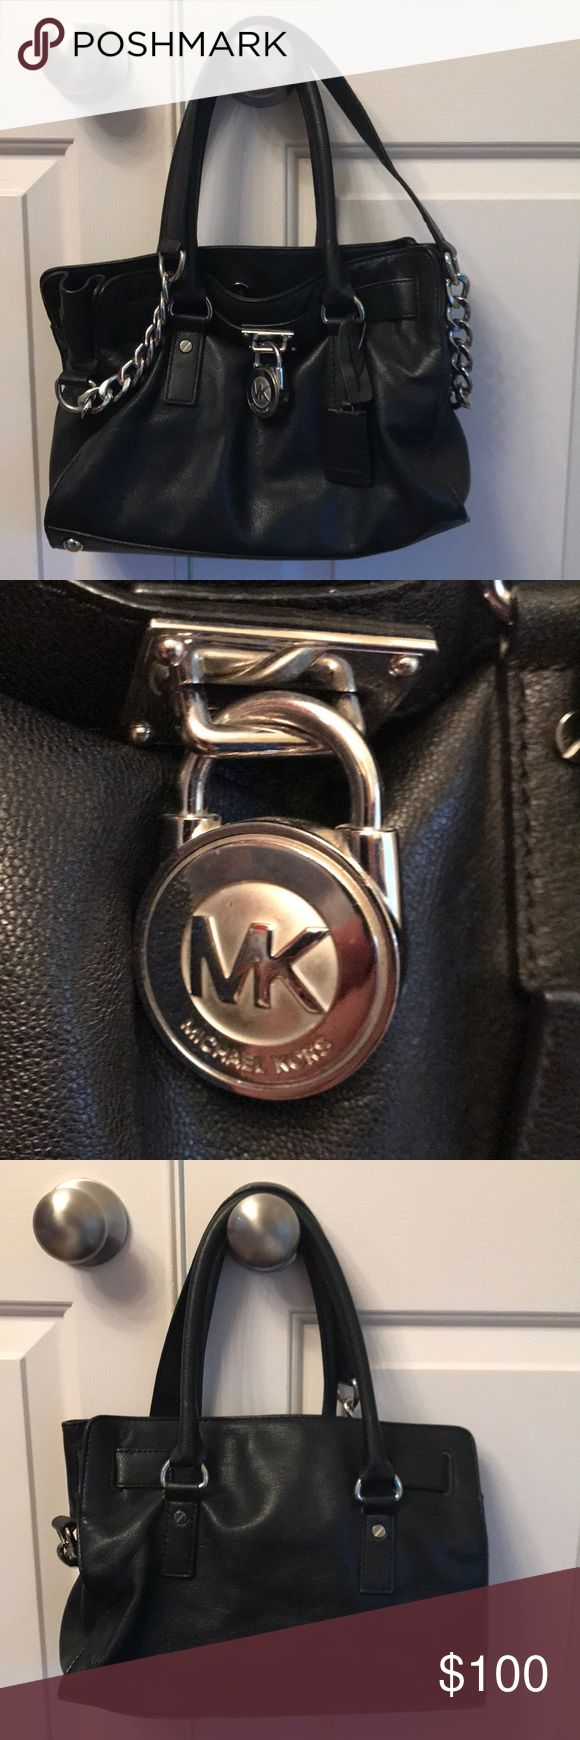 Michael Kors Small Black Hamilton Tote Gently used authentic MK Hamilton Tote - it is the smaller size, but fits a lot! Black leather with silver chain and MK logo on the front. The outside is in amazing condition! The back handle shows some wear, and the inside pockets have some wear as well. So much life left in it! KORS Michael Kors Bags Totes